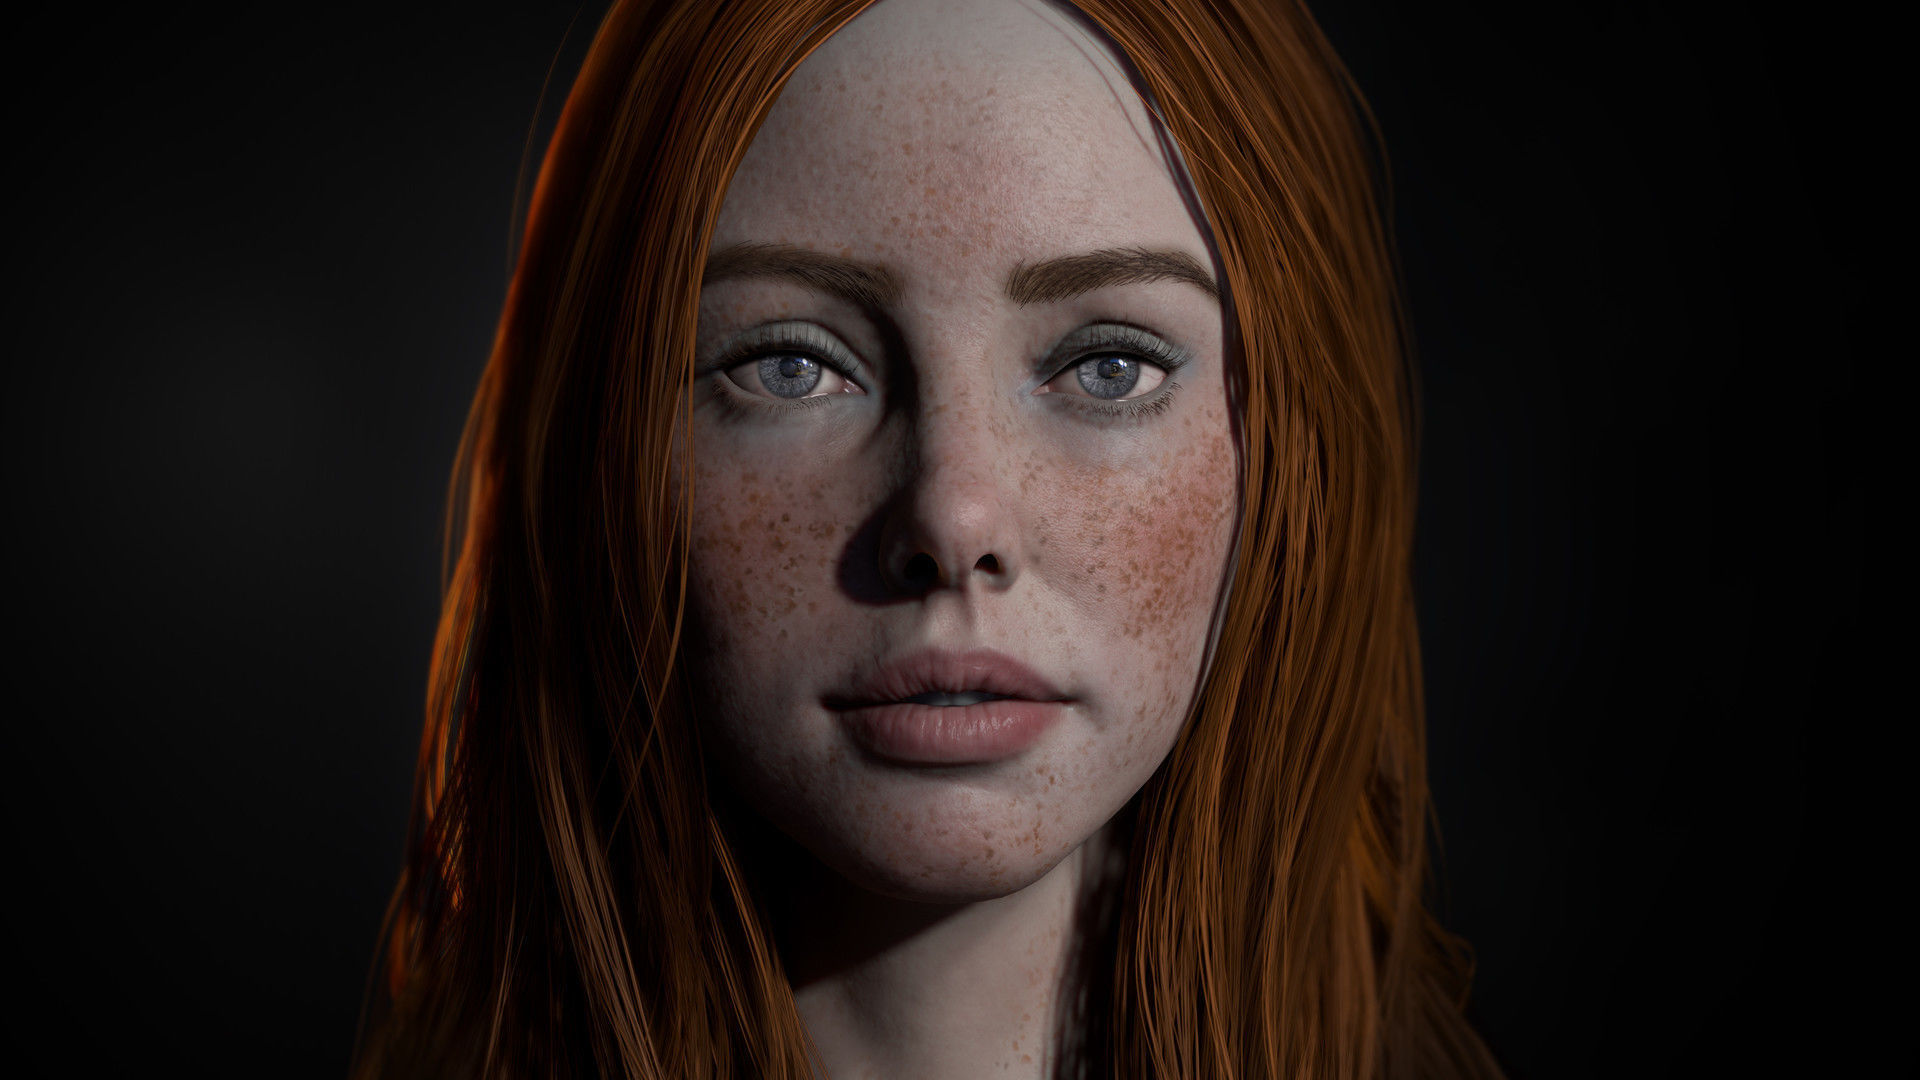 Realistic female real-time head